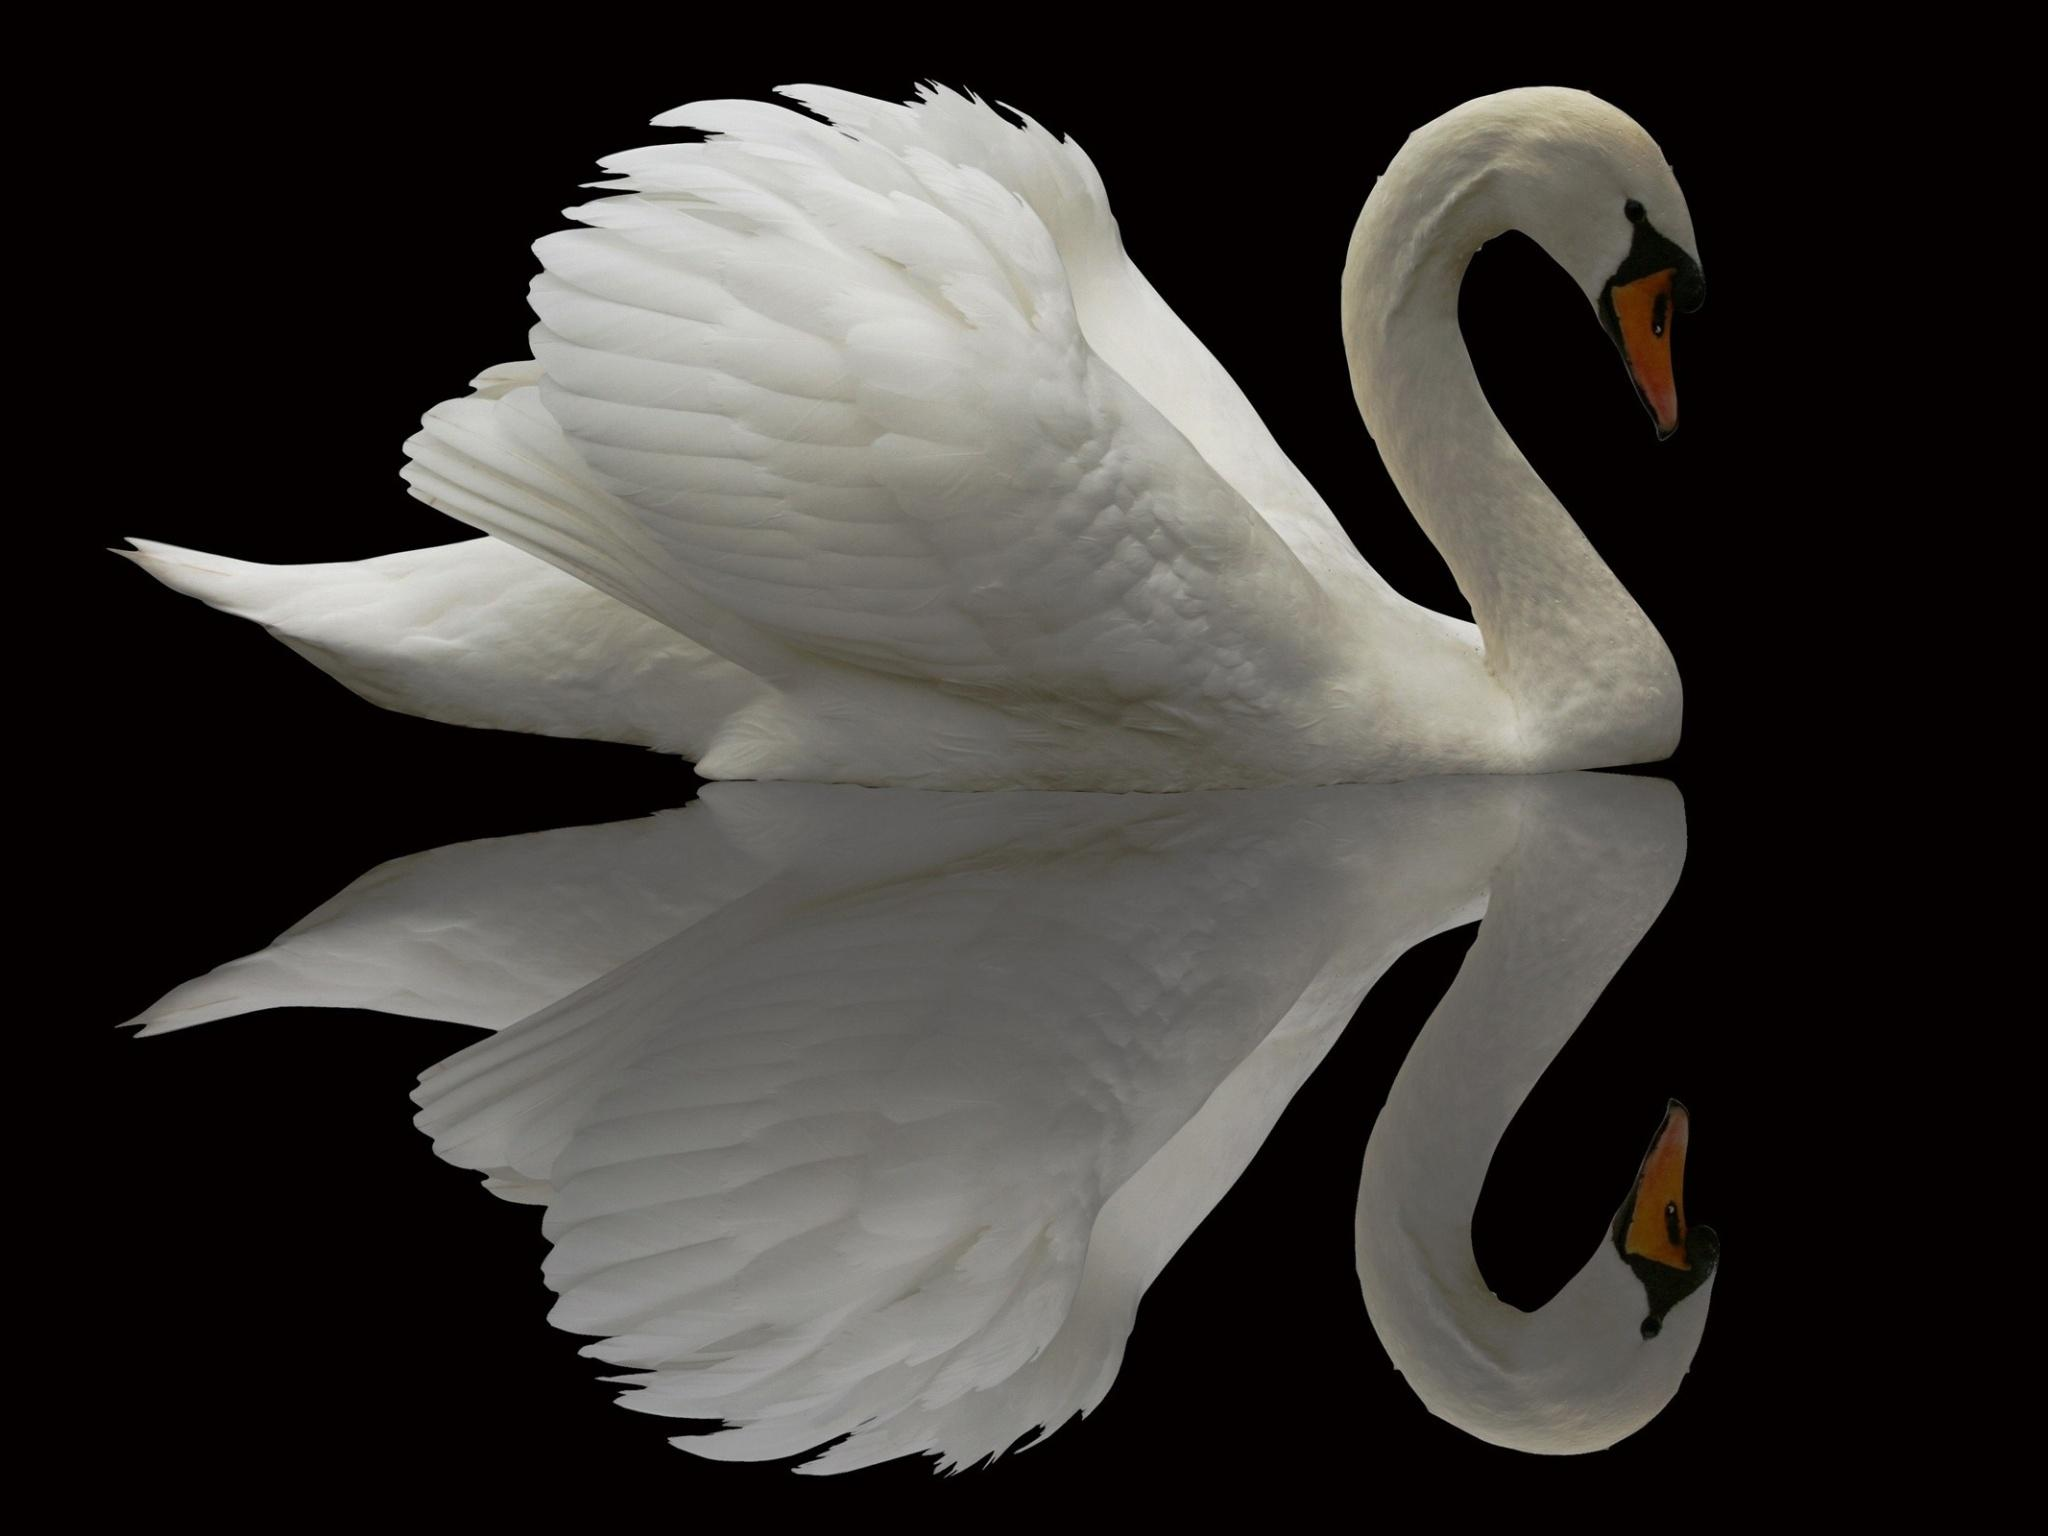 Beautiful Quotes For Friends With Wallpaper White Swan Reflection In A Black Lake Faxo Faxo